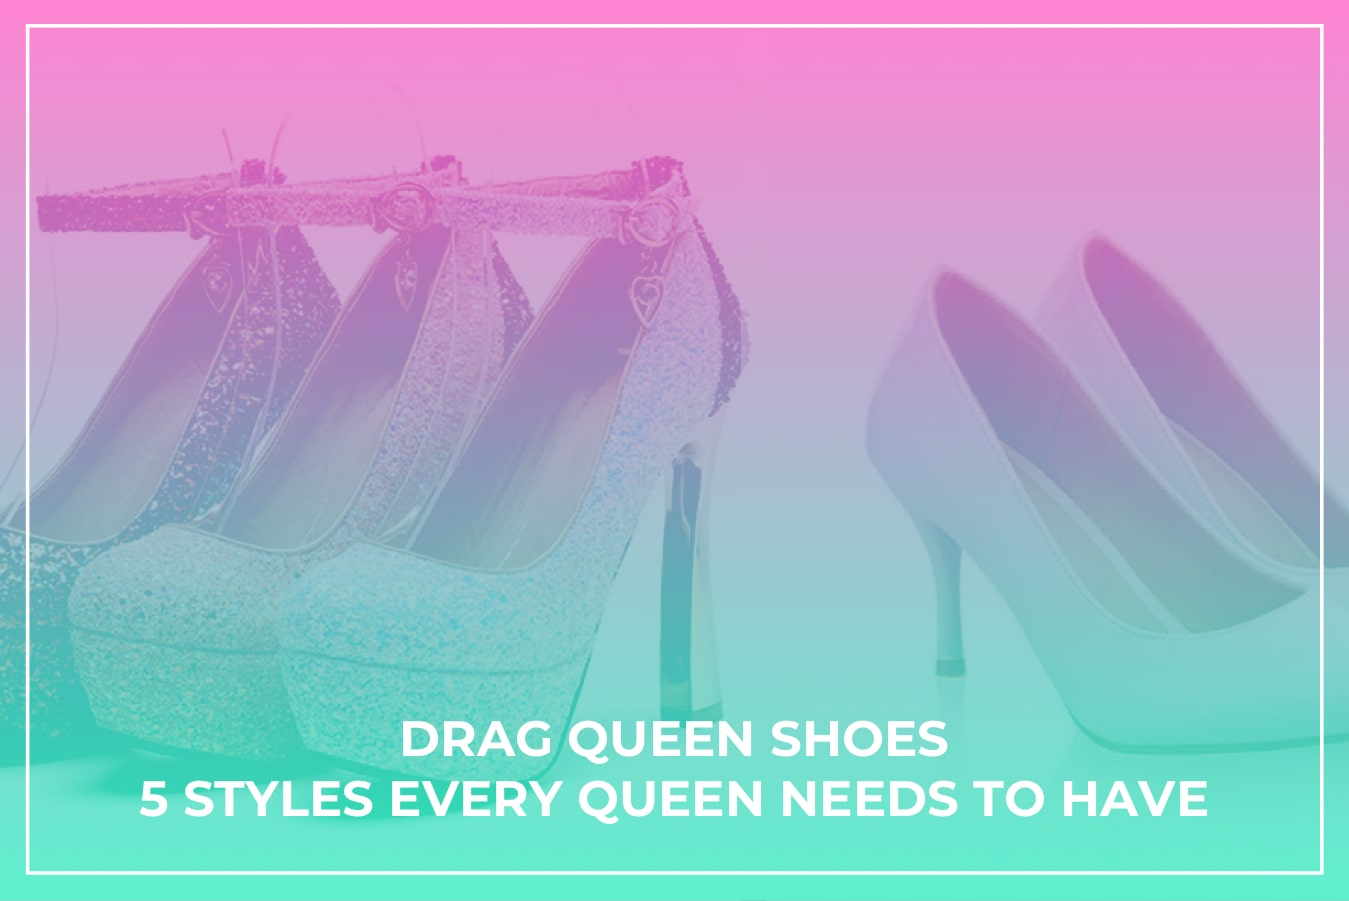 drag queen shoes 5 styles